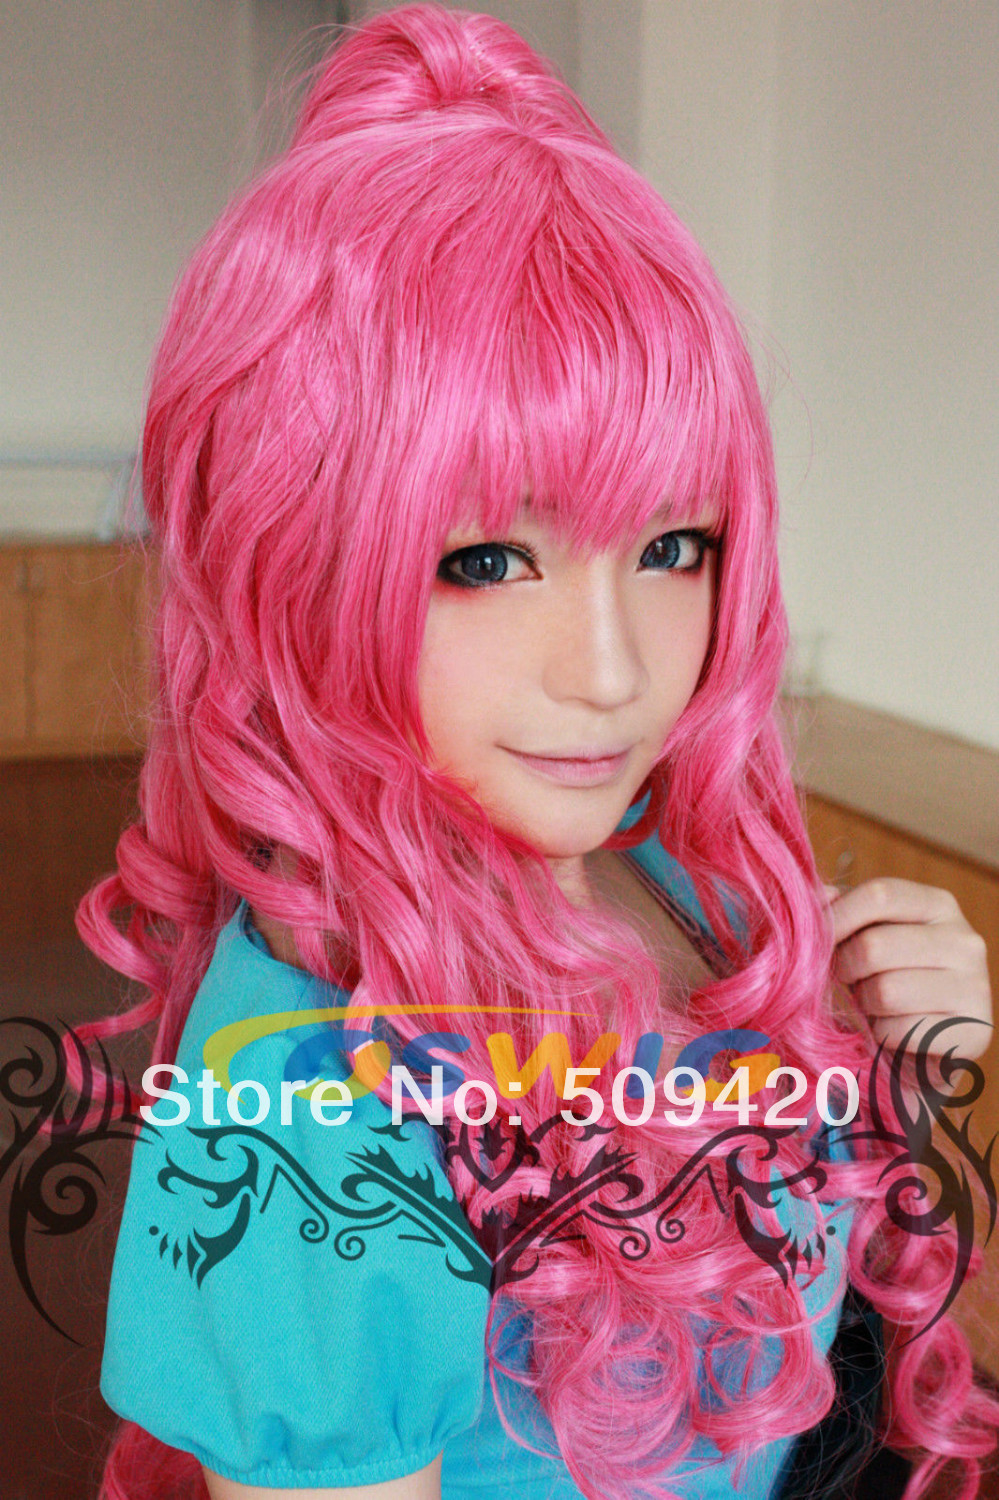 FREE SHIPPING>****^^ newD@DNEW Women's Girls Megurine COSPLAY Wig Long Curly Wig Red Full Wig AS